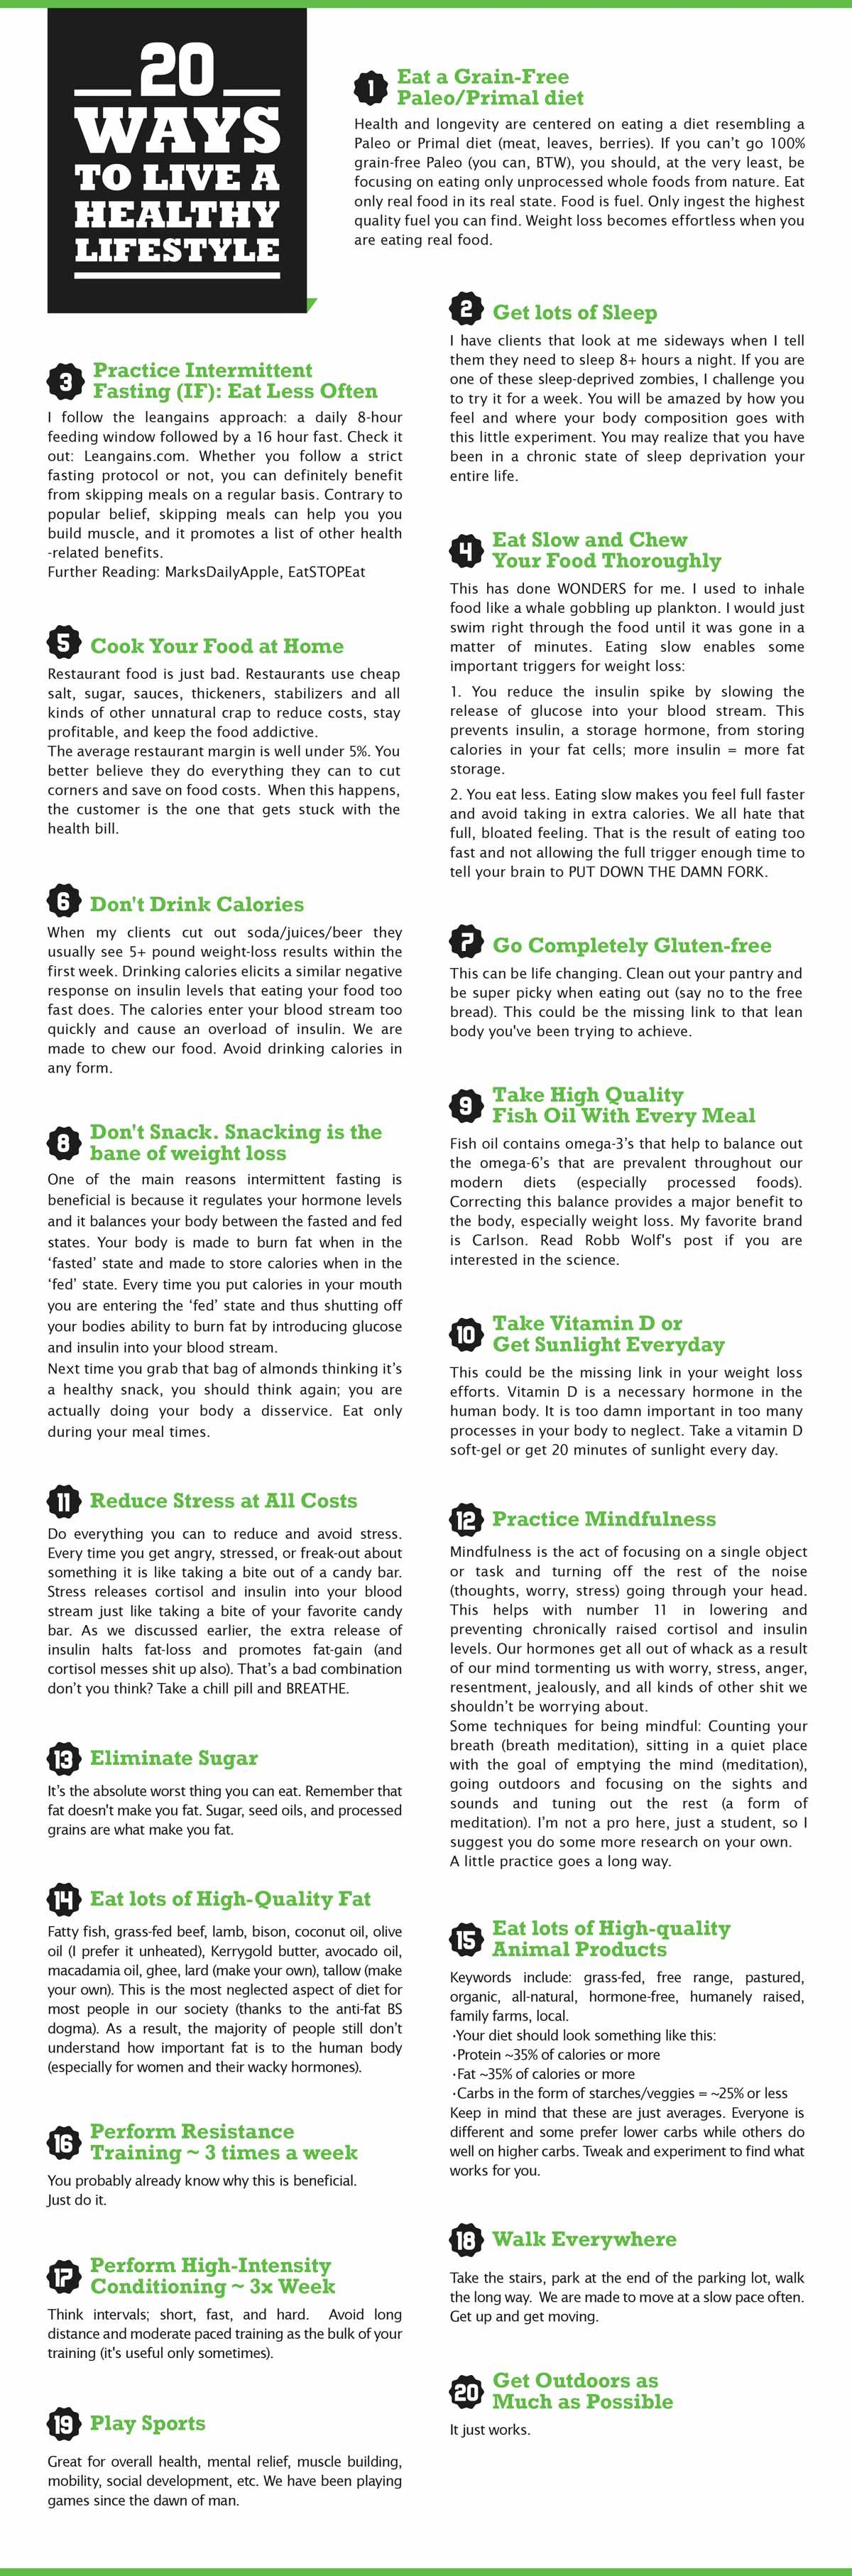 Free Poster Download: 20 Ways To Live A Healthy Lifestyle By AGYMLIFE.com